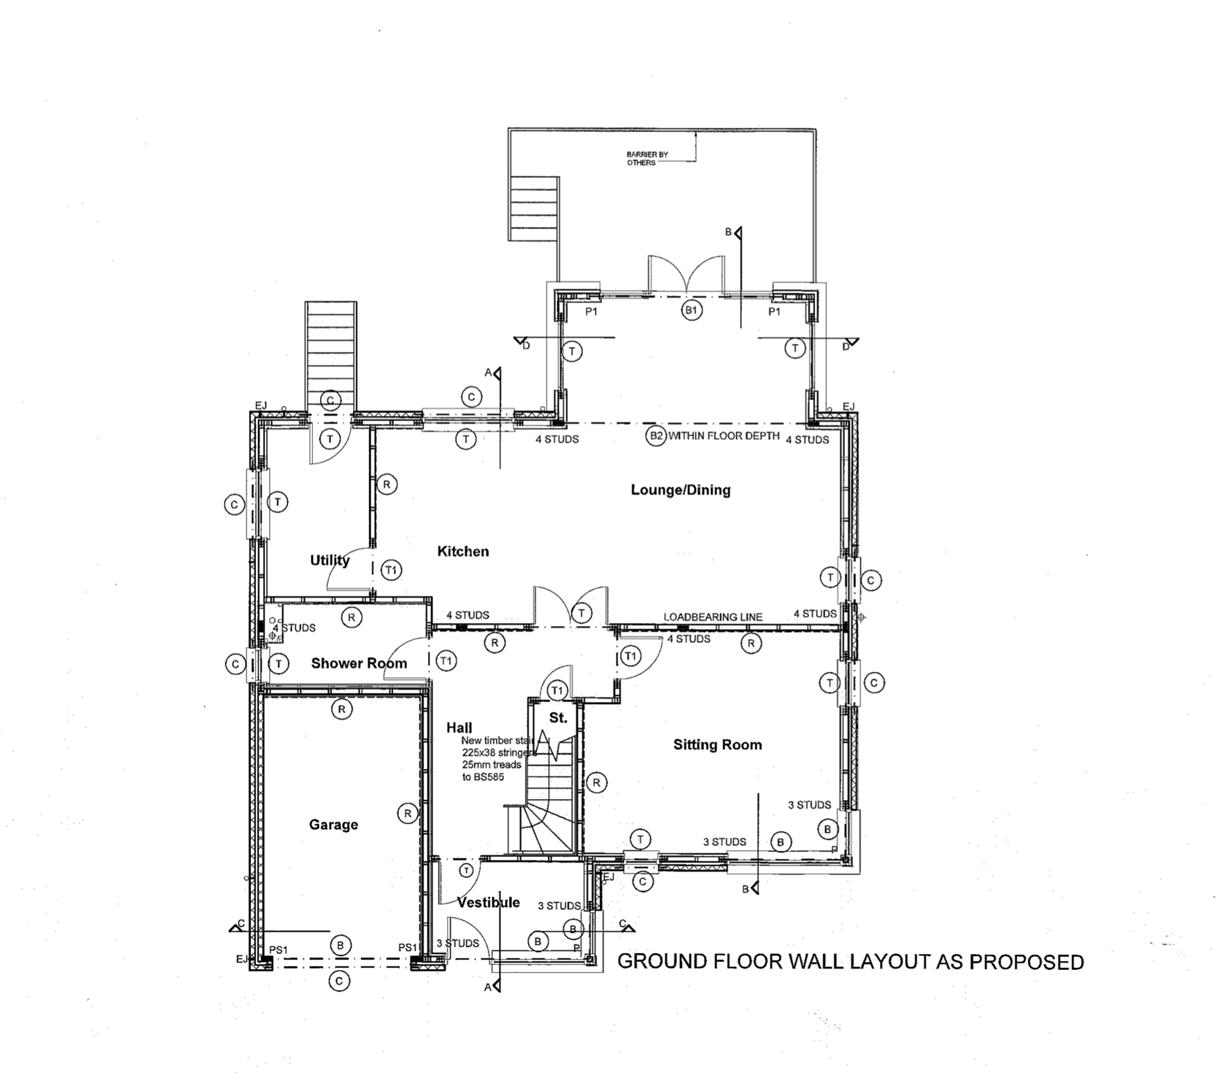 Ground Floor Wall Layout.png